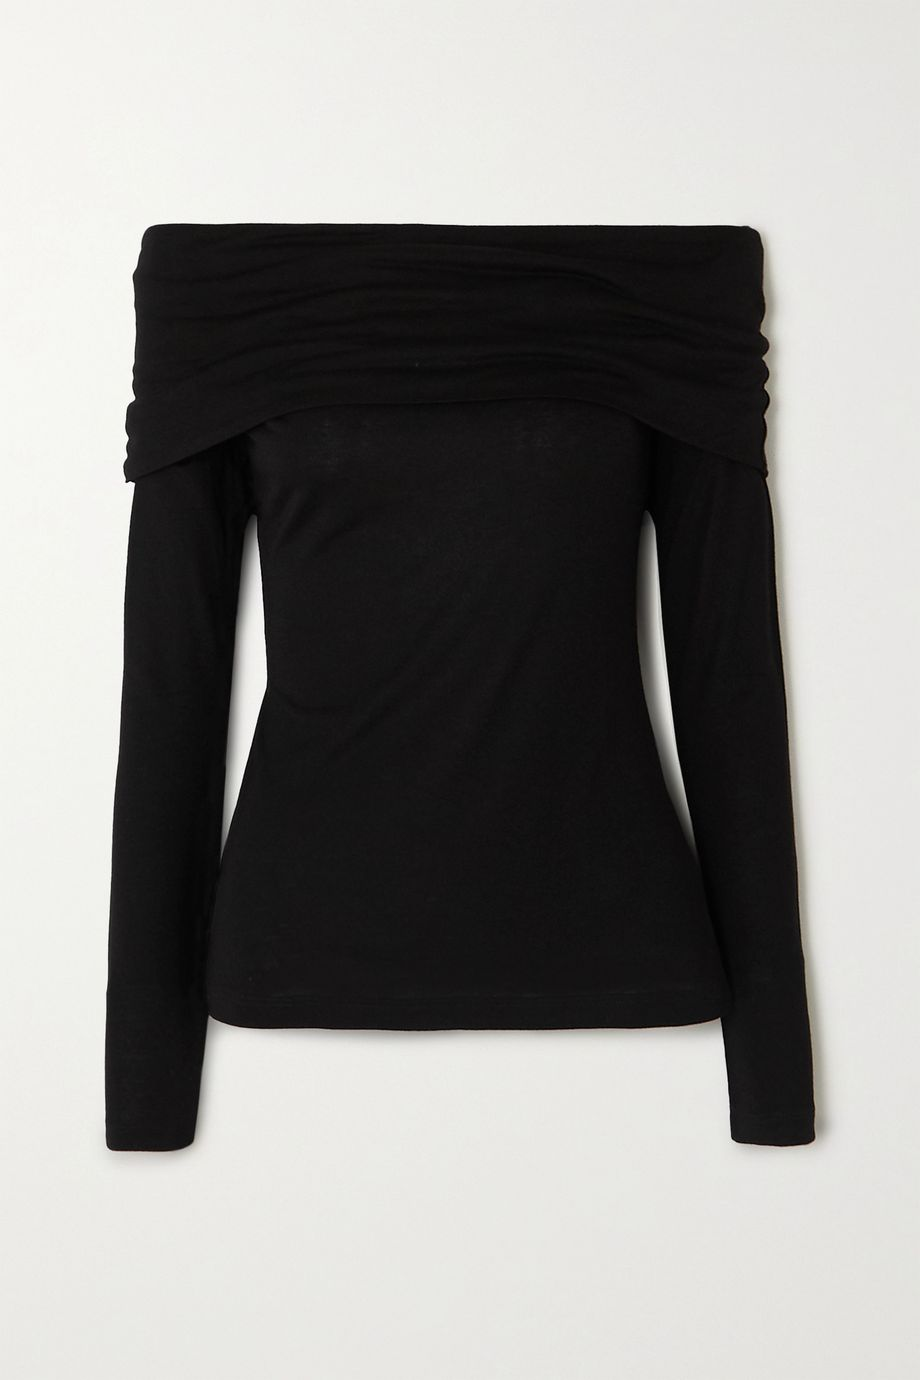 Ninety Percent + NET SUSTAIN off-the-shoulder Tencel top